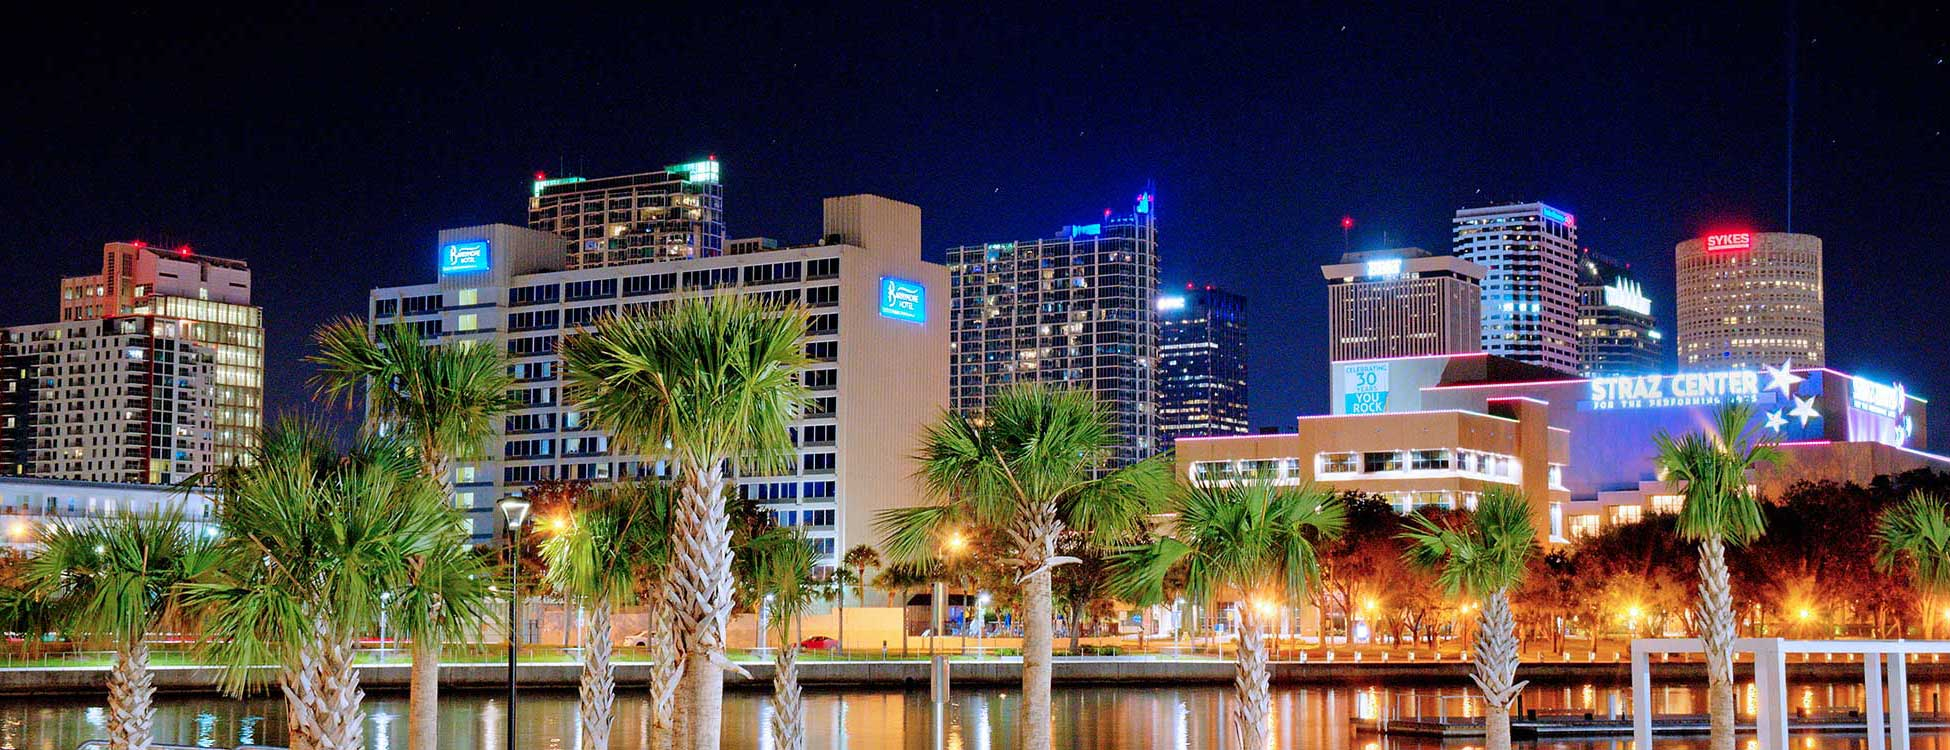 Tampa Hotels – Downtown Tampa Hotels – The Barrymore Hotel With Tampa Bay Performing Arts Center Schedule